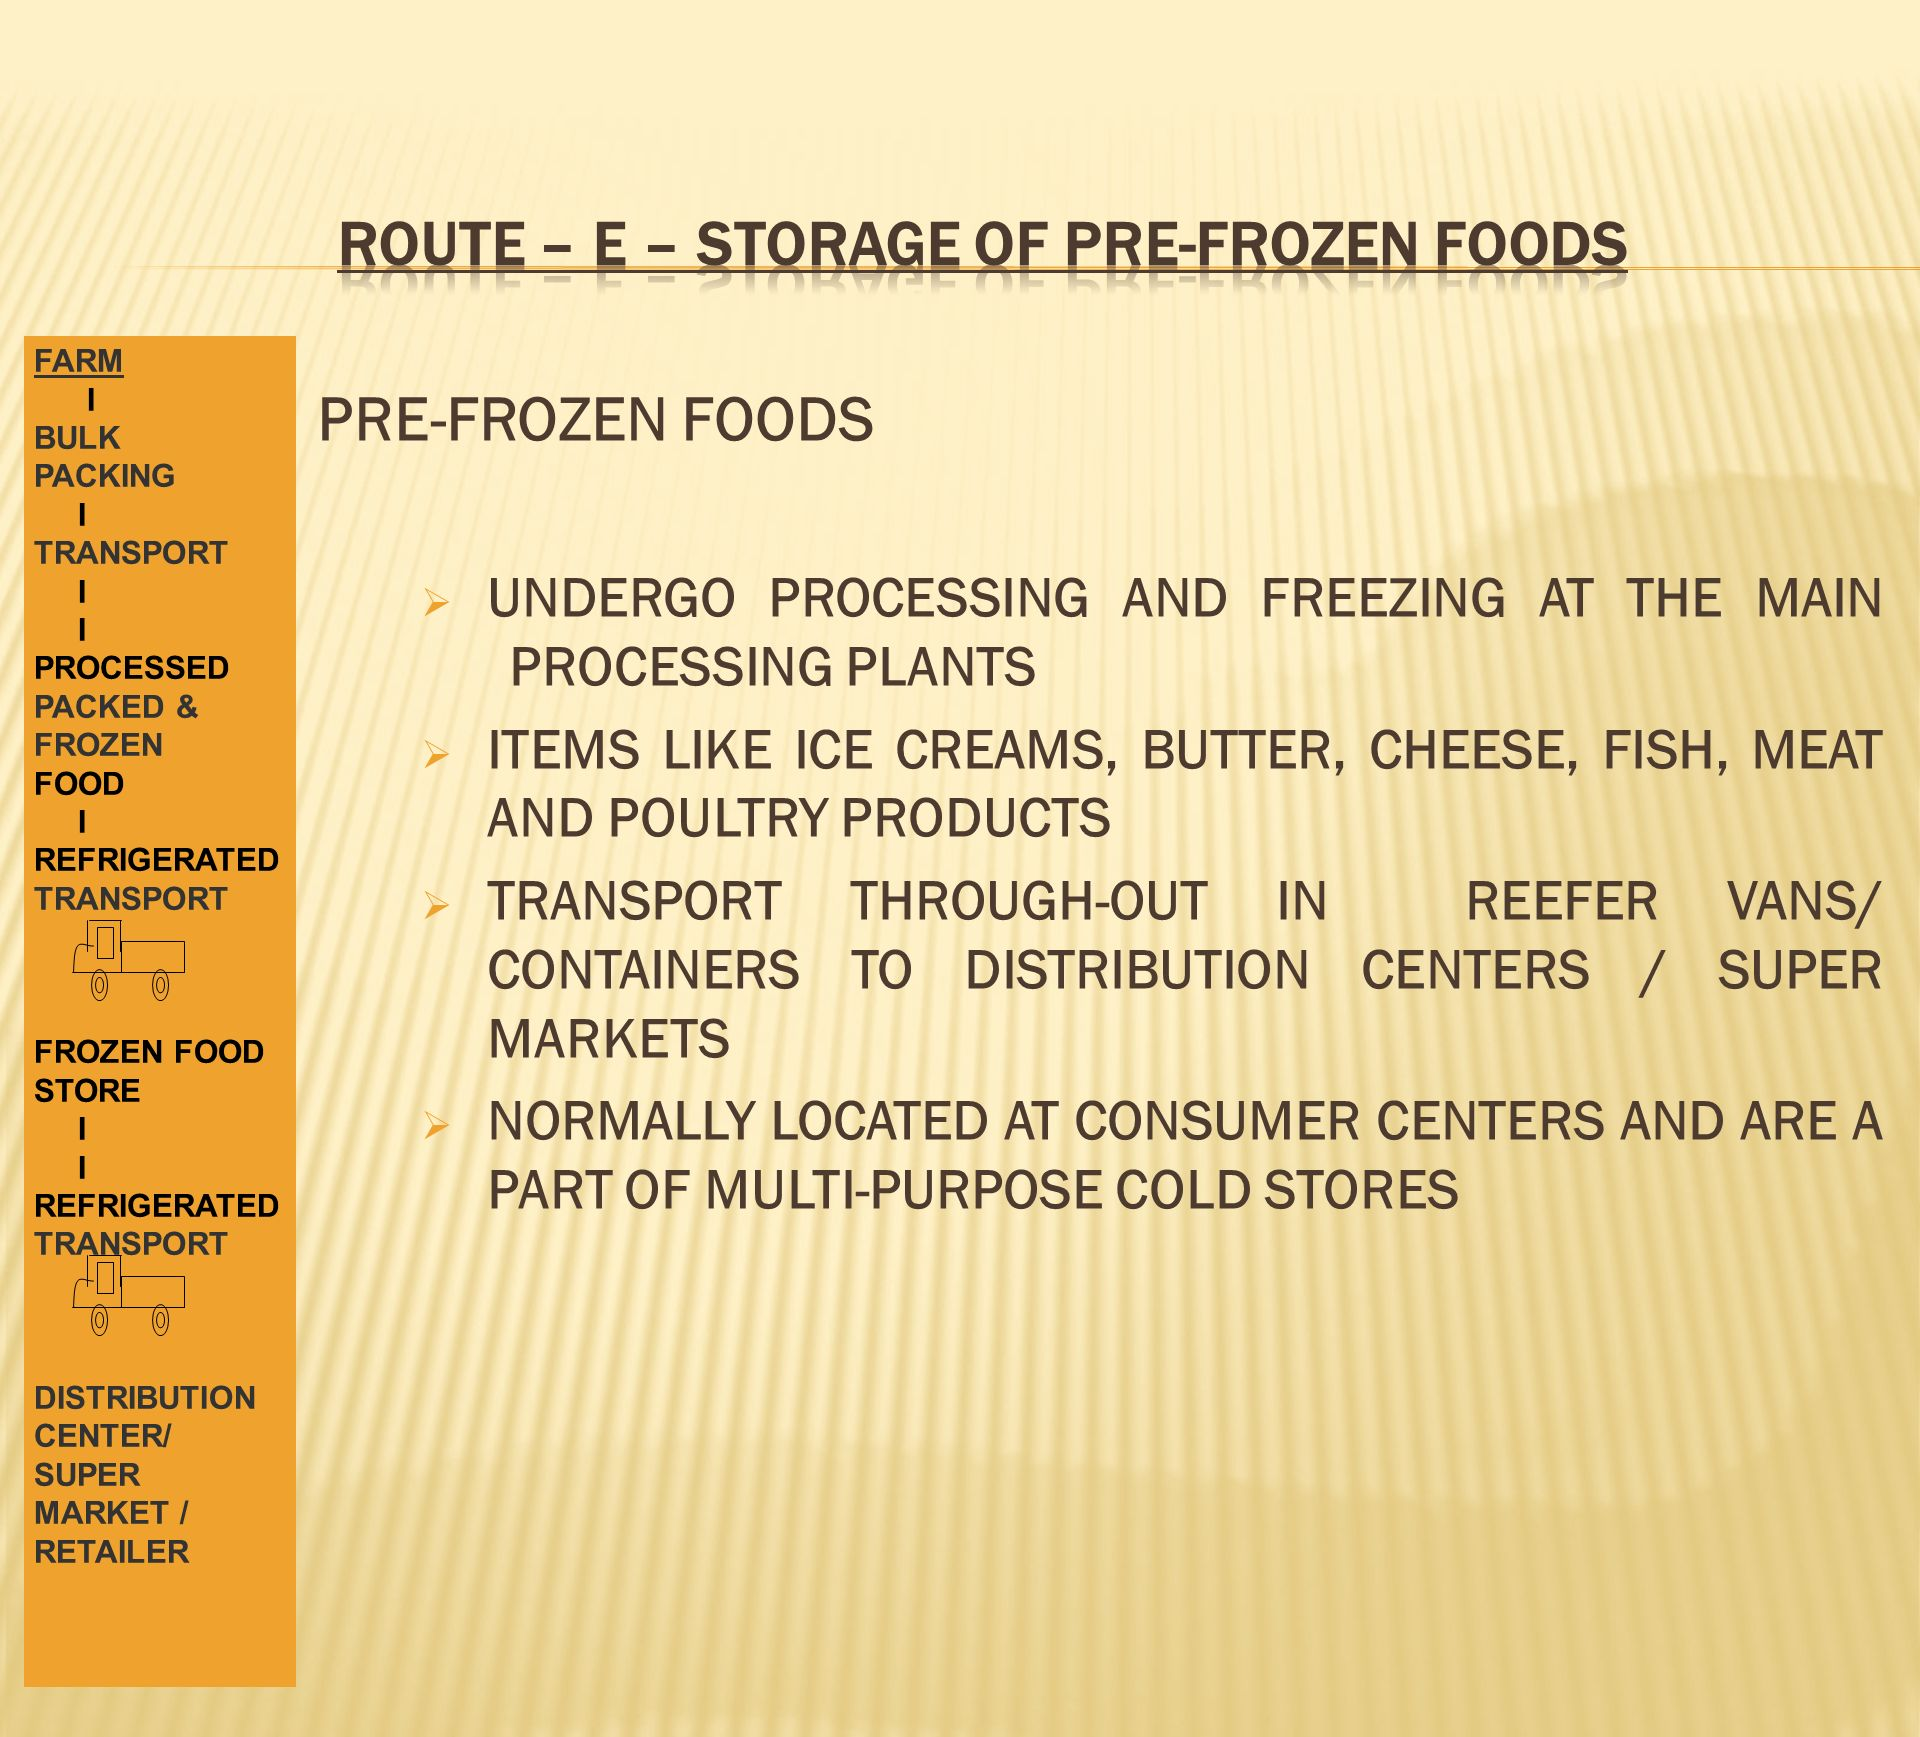 ROUTE – E – STORAGE OF PRE-FROZEN FOODS